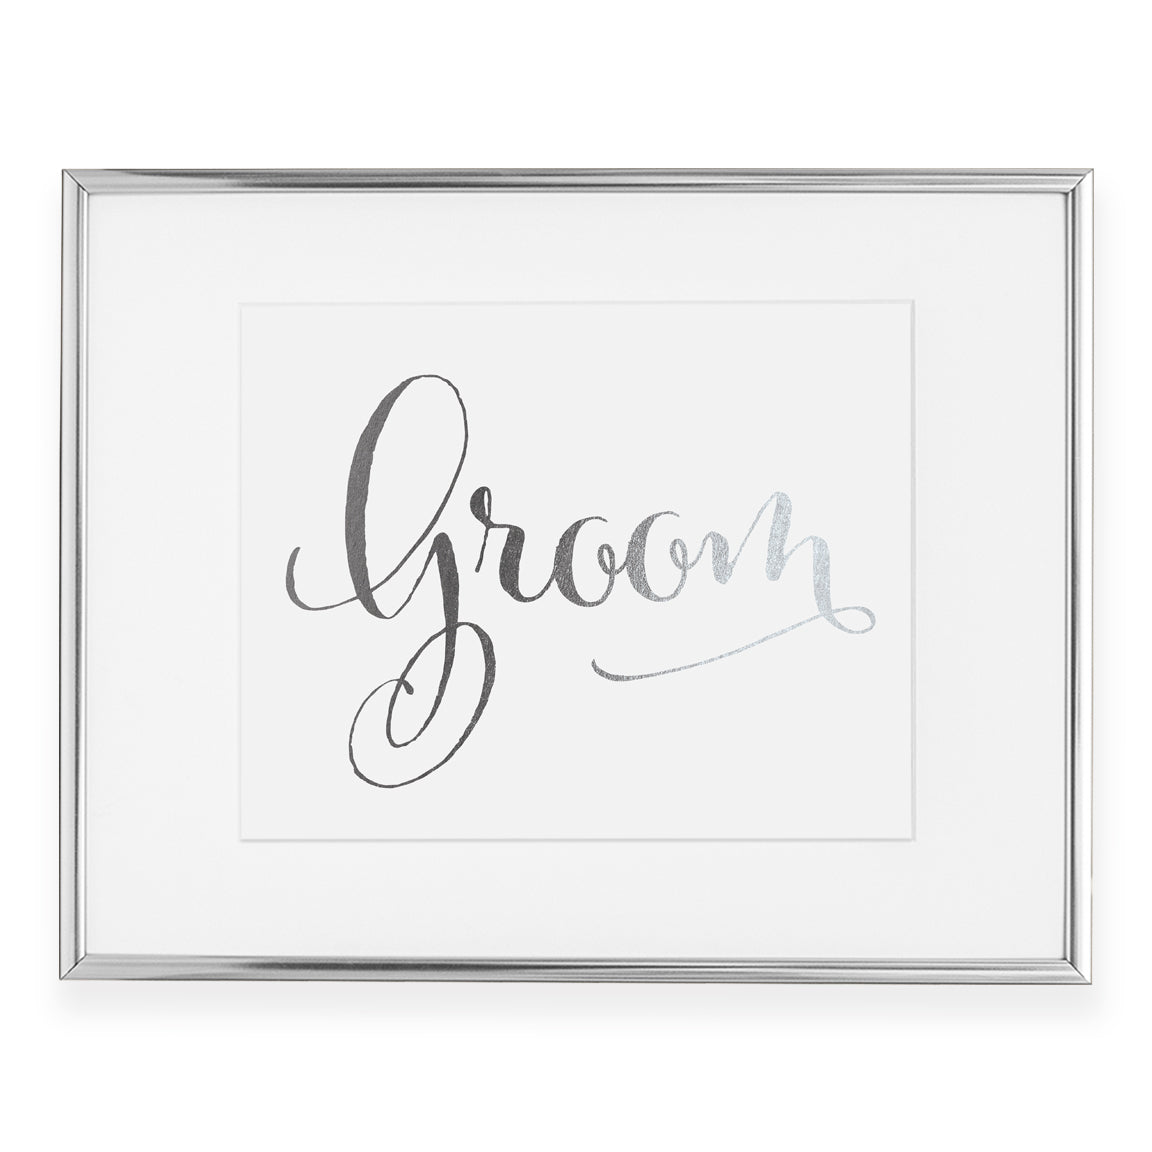 Groom Foil Art Print